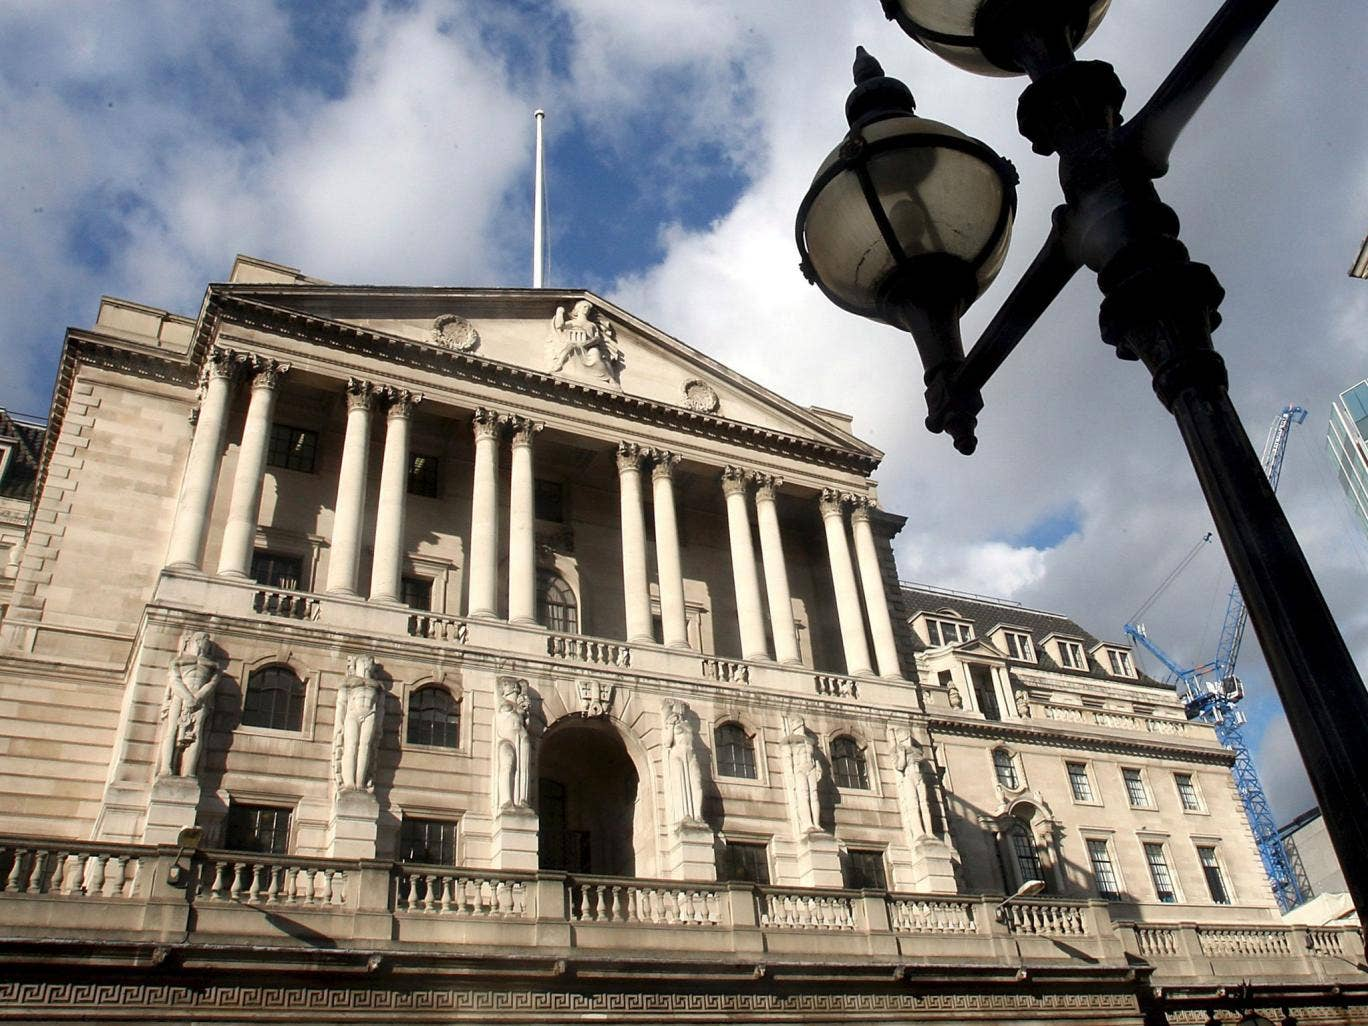 The Bank of England must be given legal authority to break up banks that misbehave, the Chancellor has been told